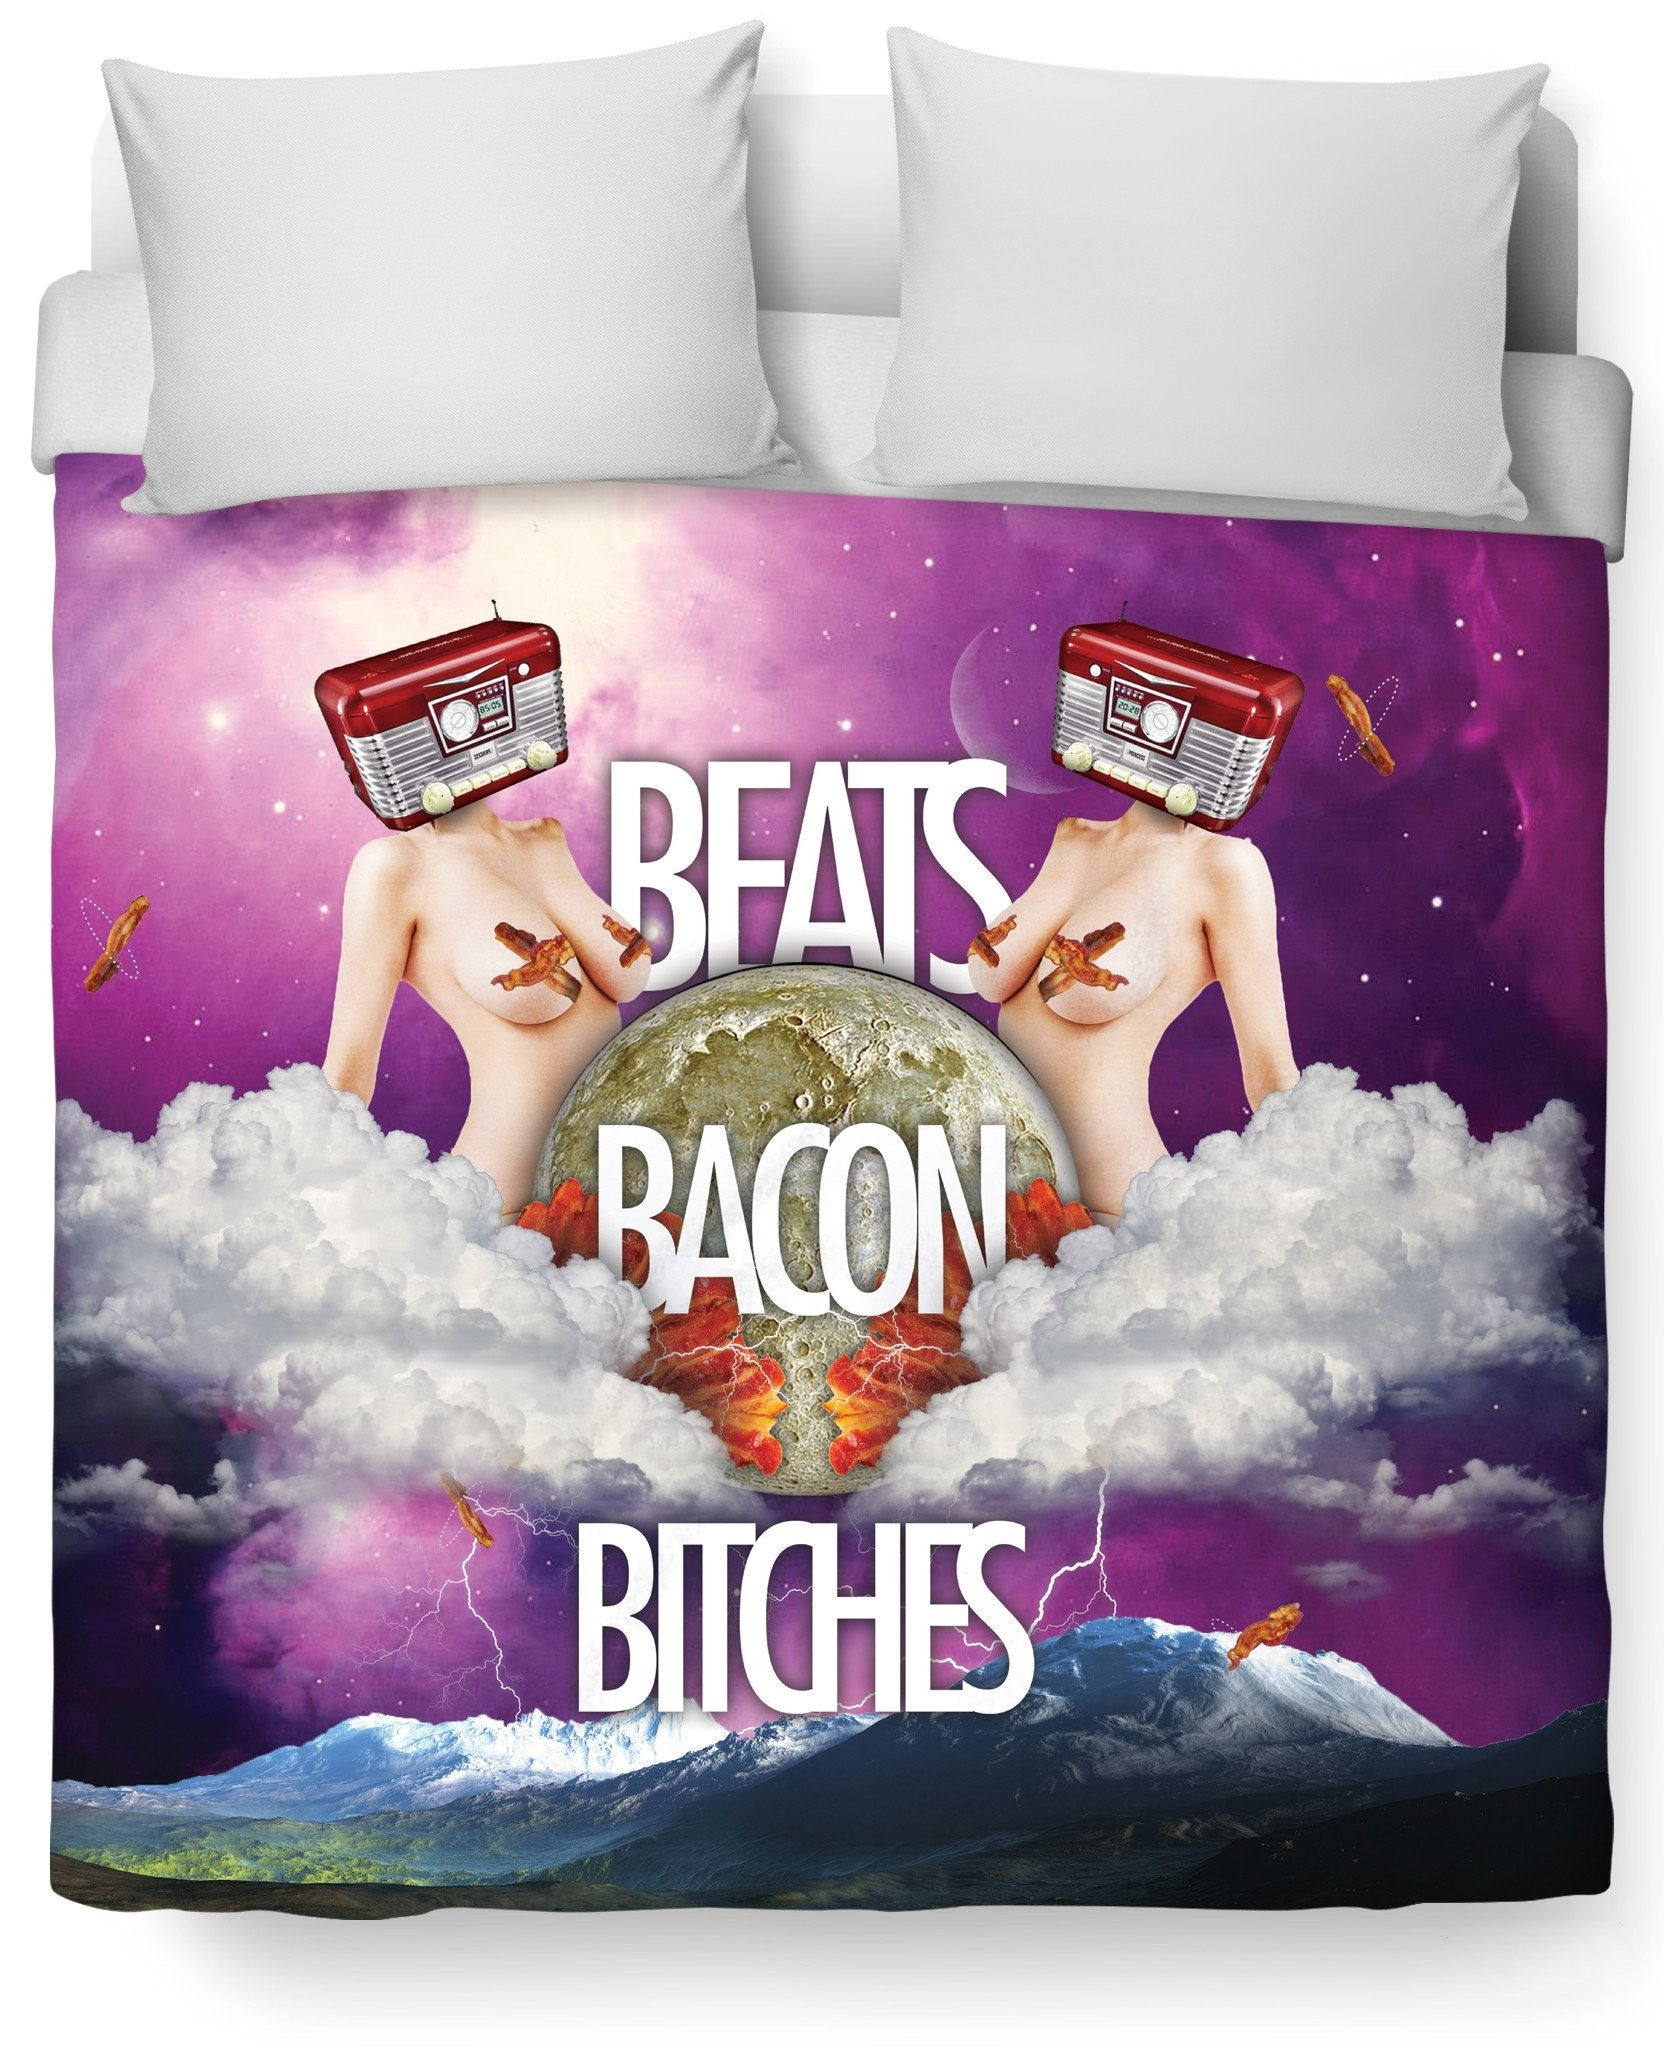 Beats Bacon Bitches Duvet Cover - TShirtsRUS.co